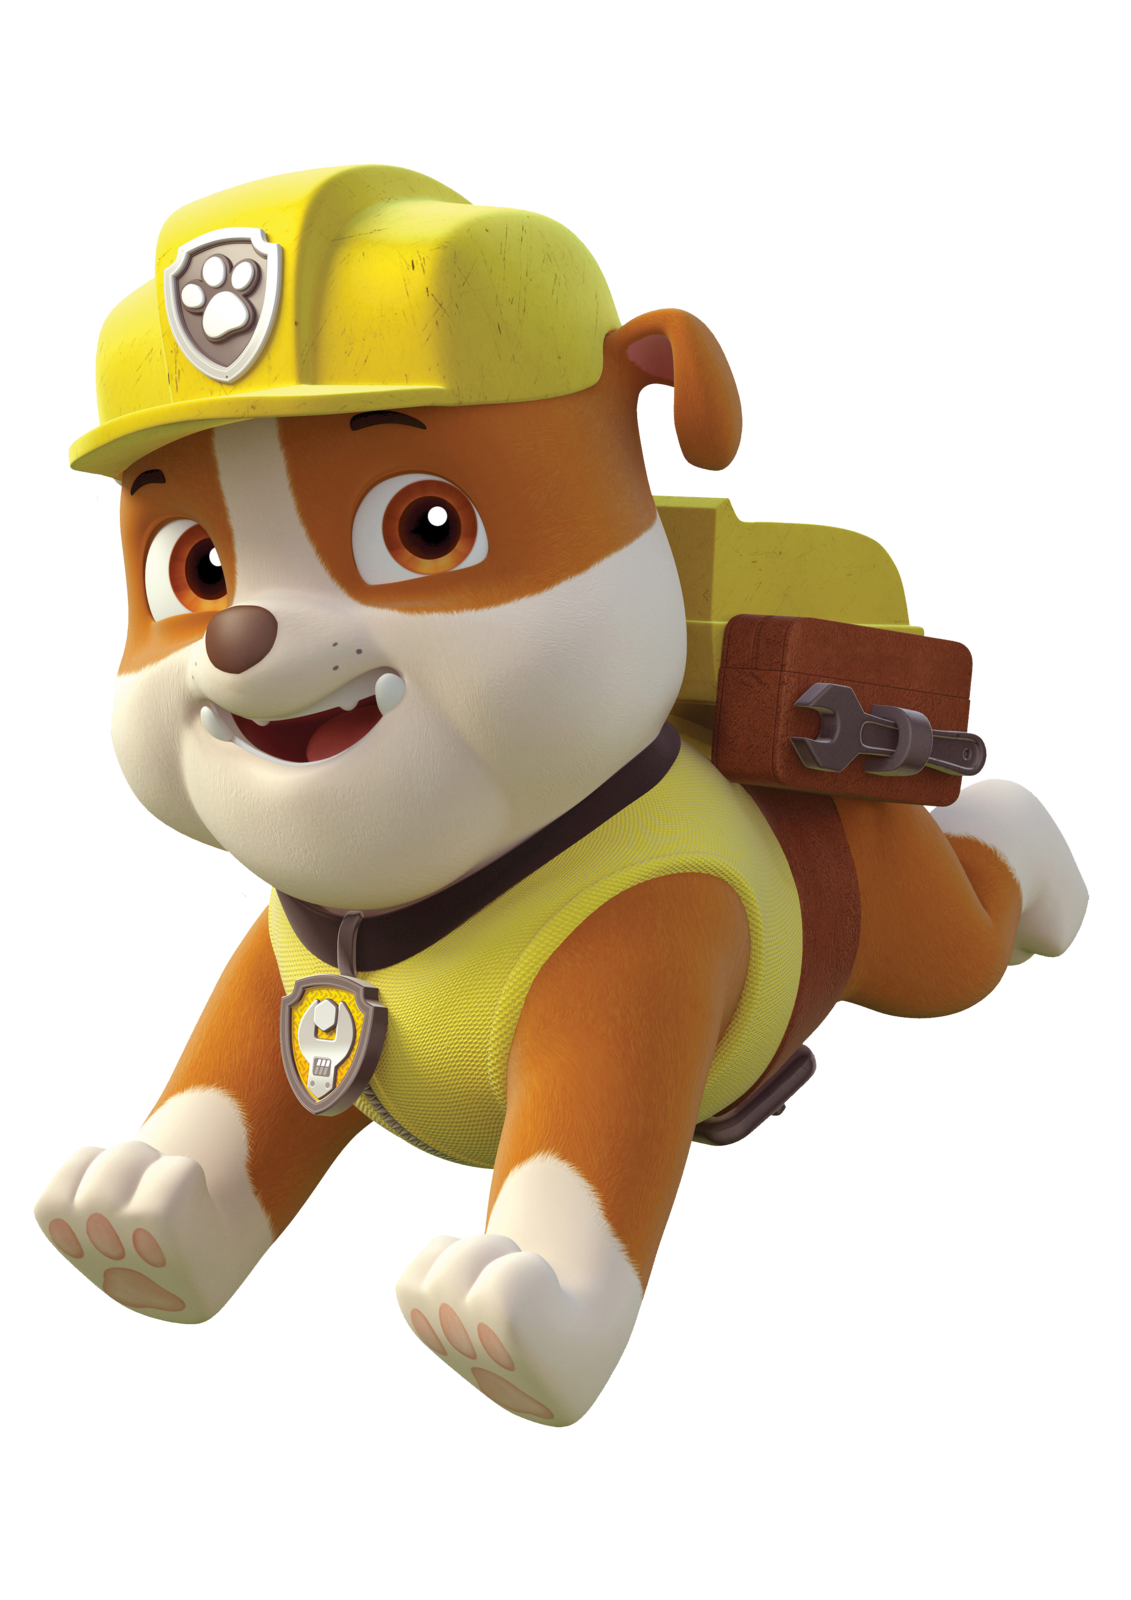 rubble paw patrol png clipart 4